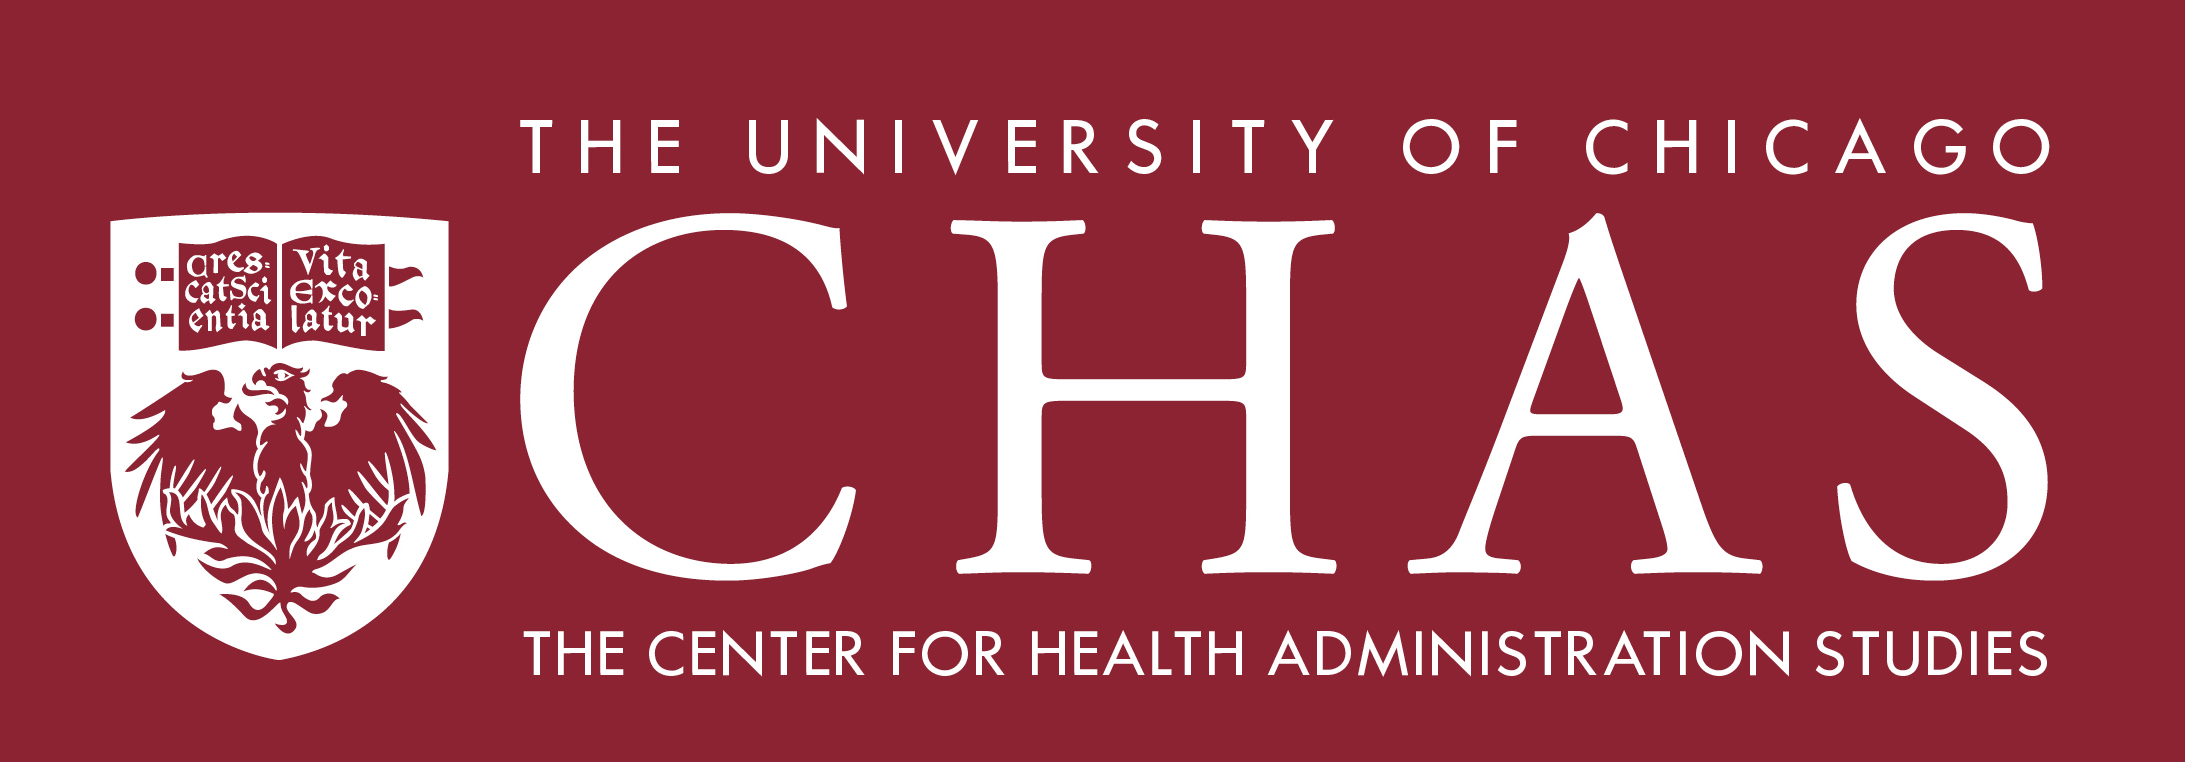 The Center for Health Administration Studies (CHAS) at the University of Chicago, School of Social Service Administration